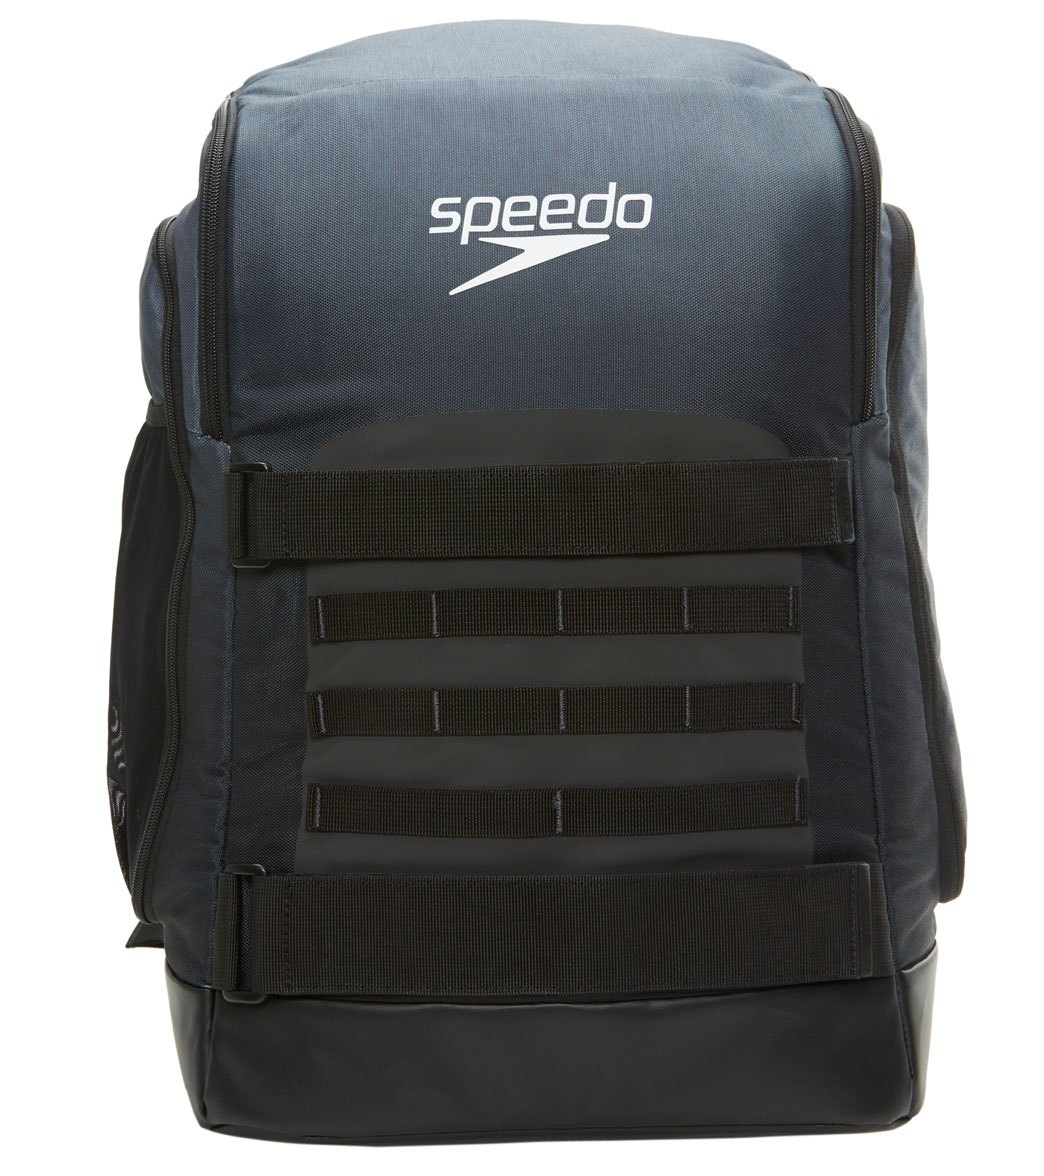 63b1e783db18 Speedo Teamster 40L Pro Backpack at SwimOutlet.com - Free Shipping